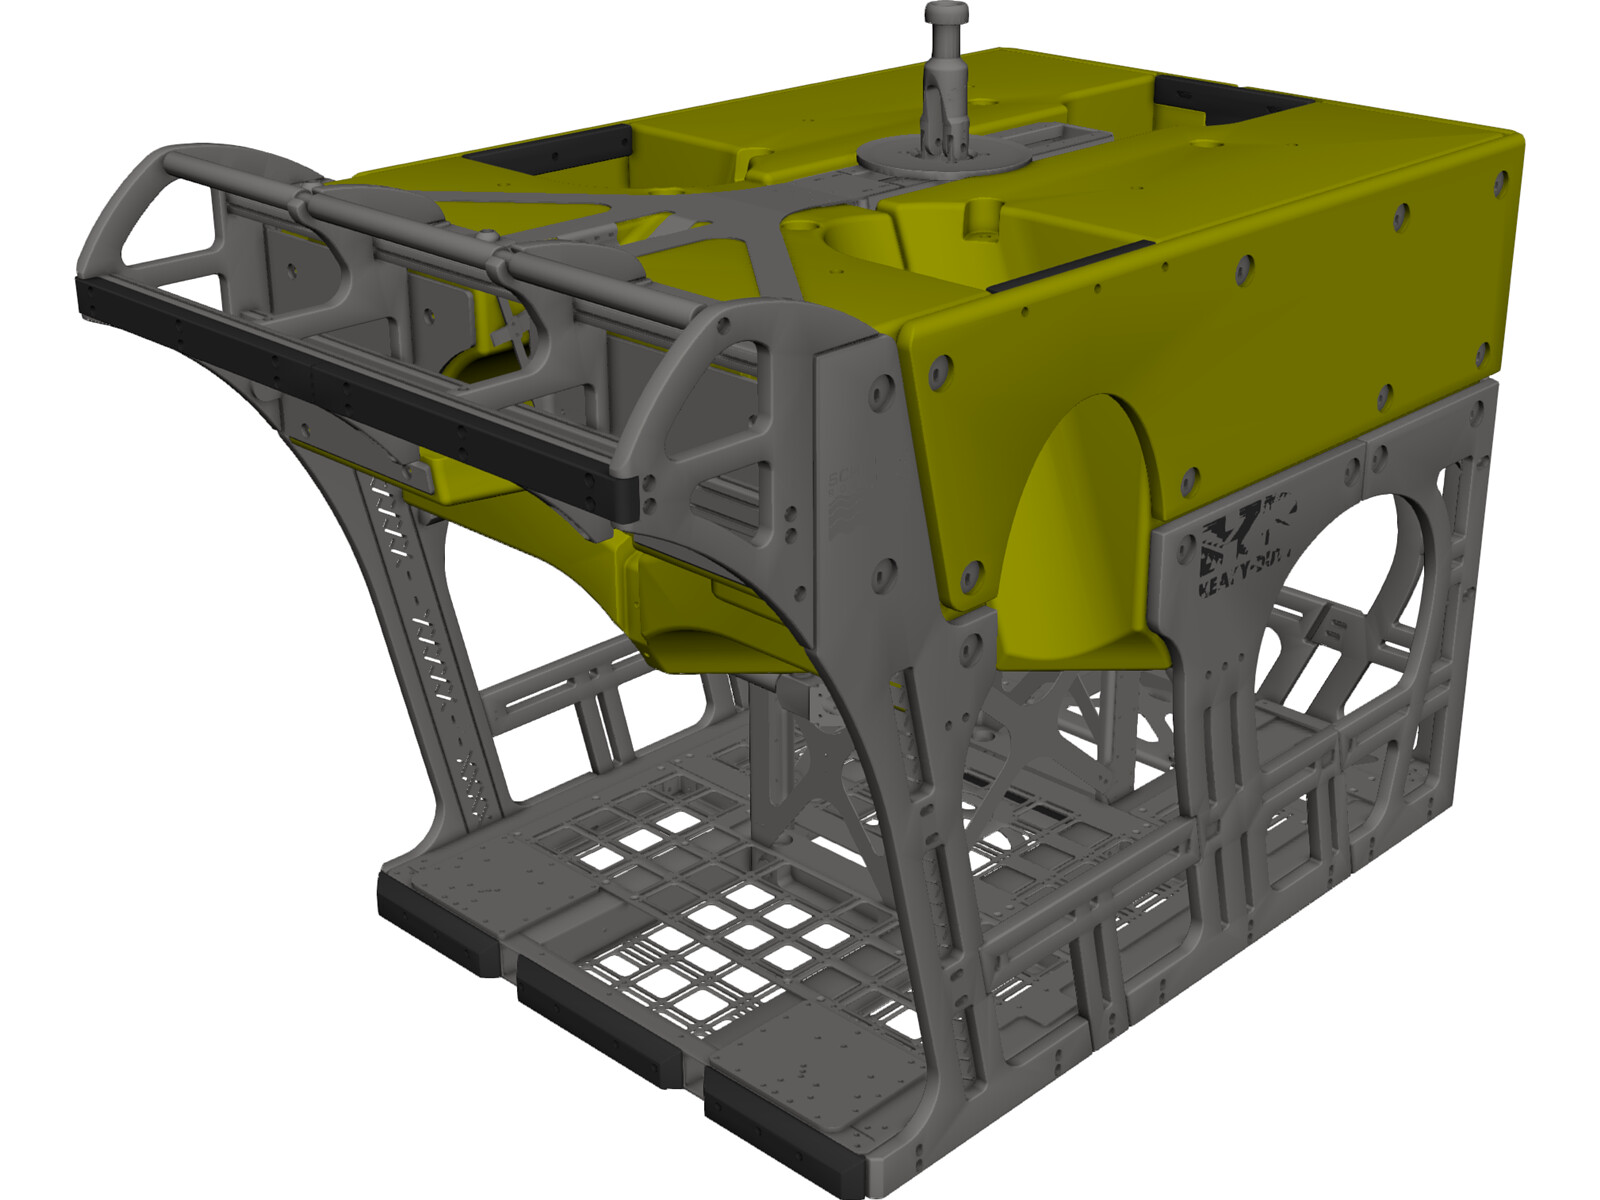 Simplified HD ROV 101-7330 3D CAD Model